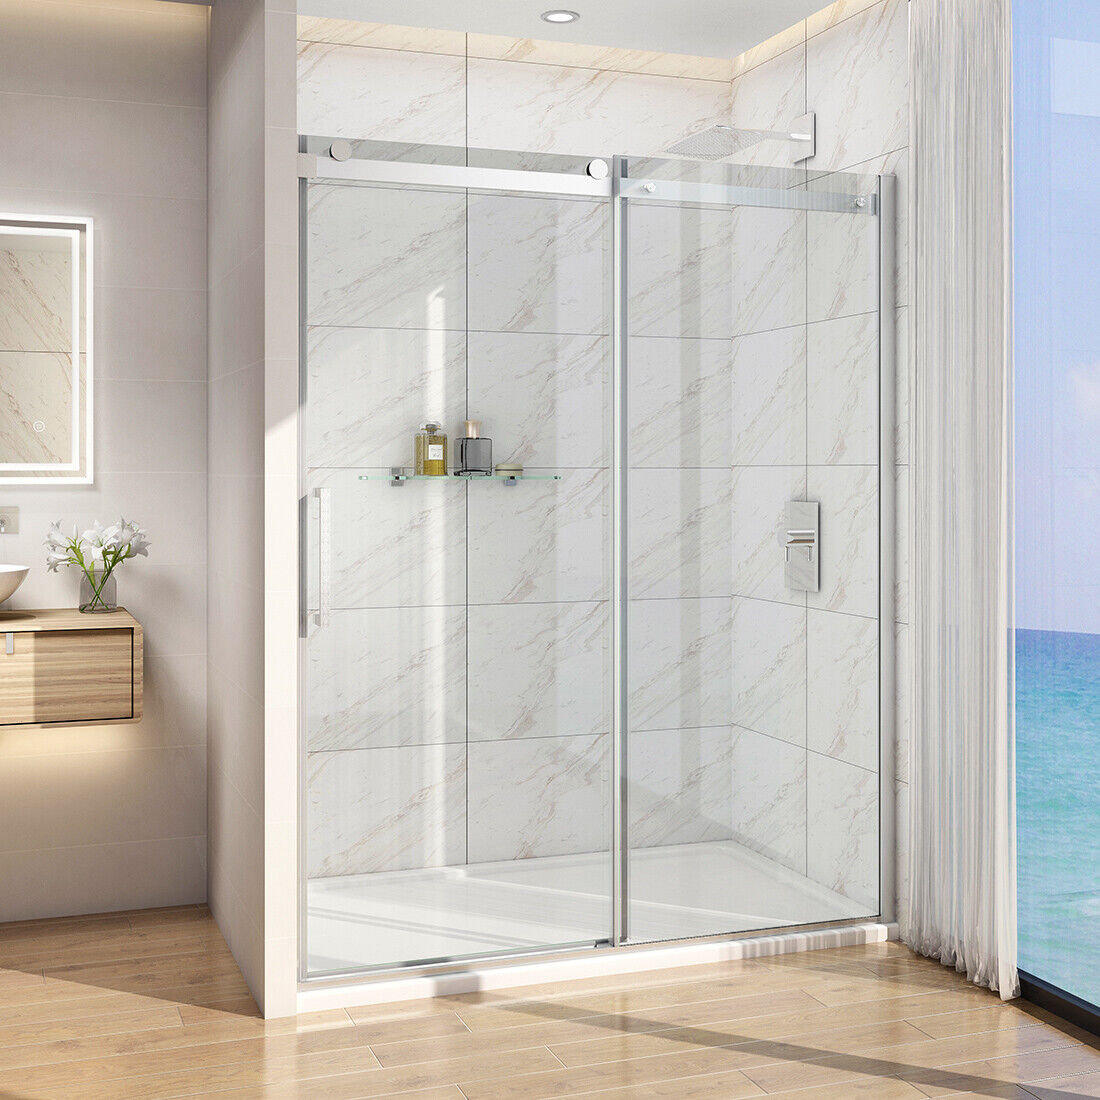 girl-shower-door